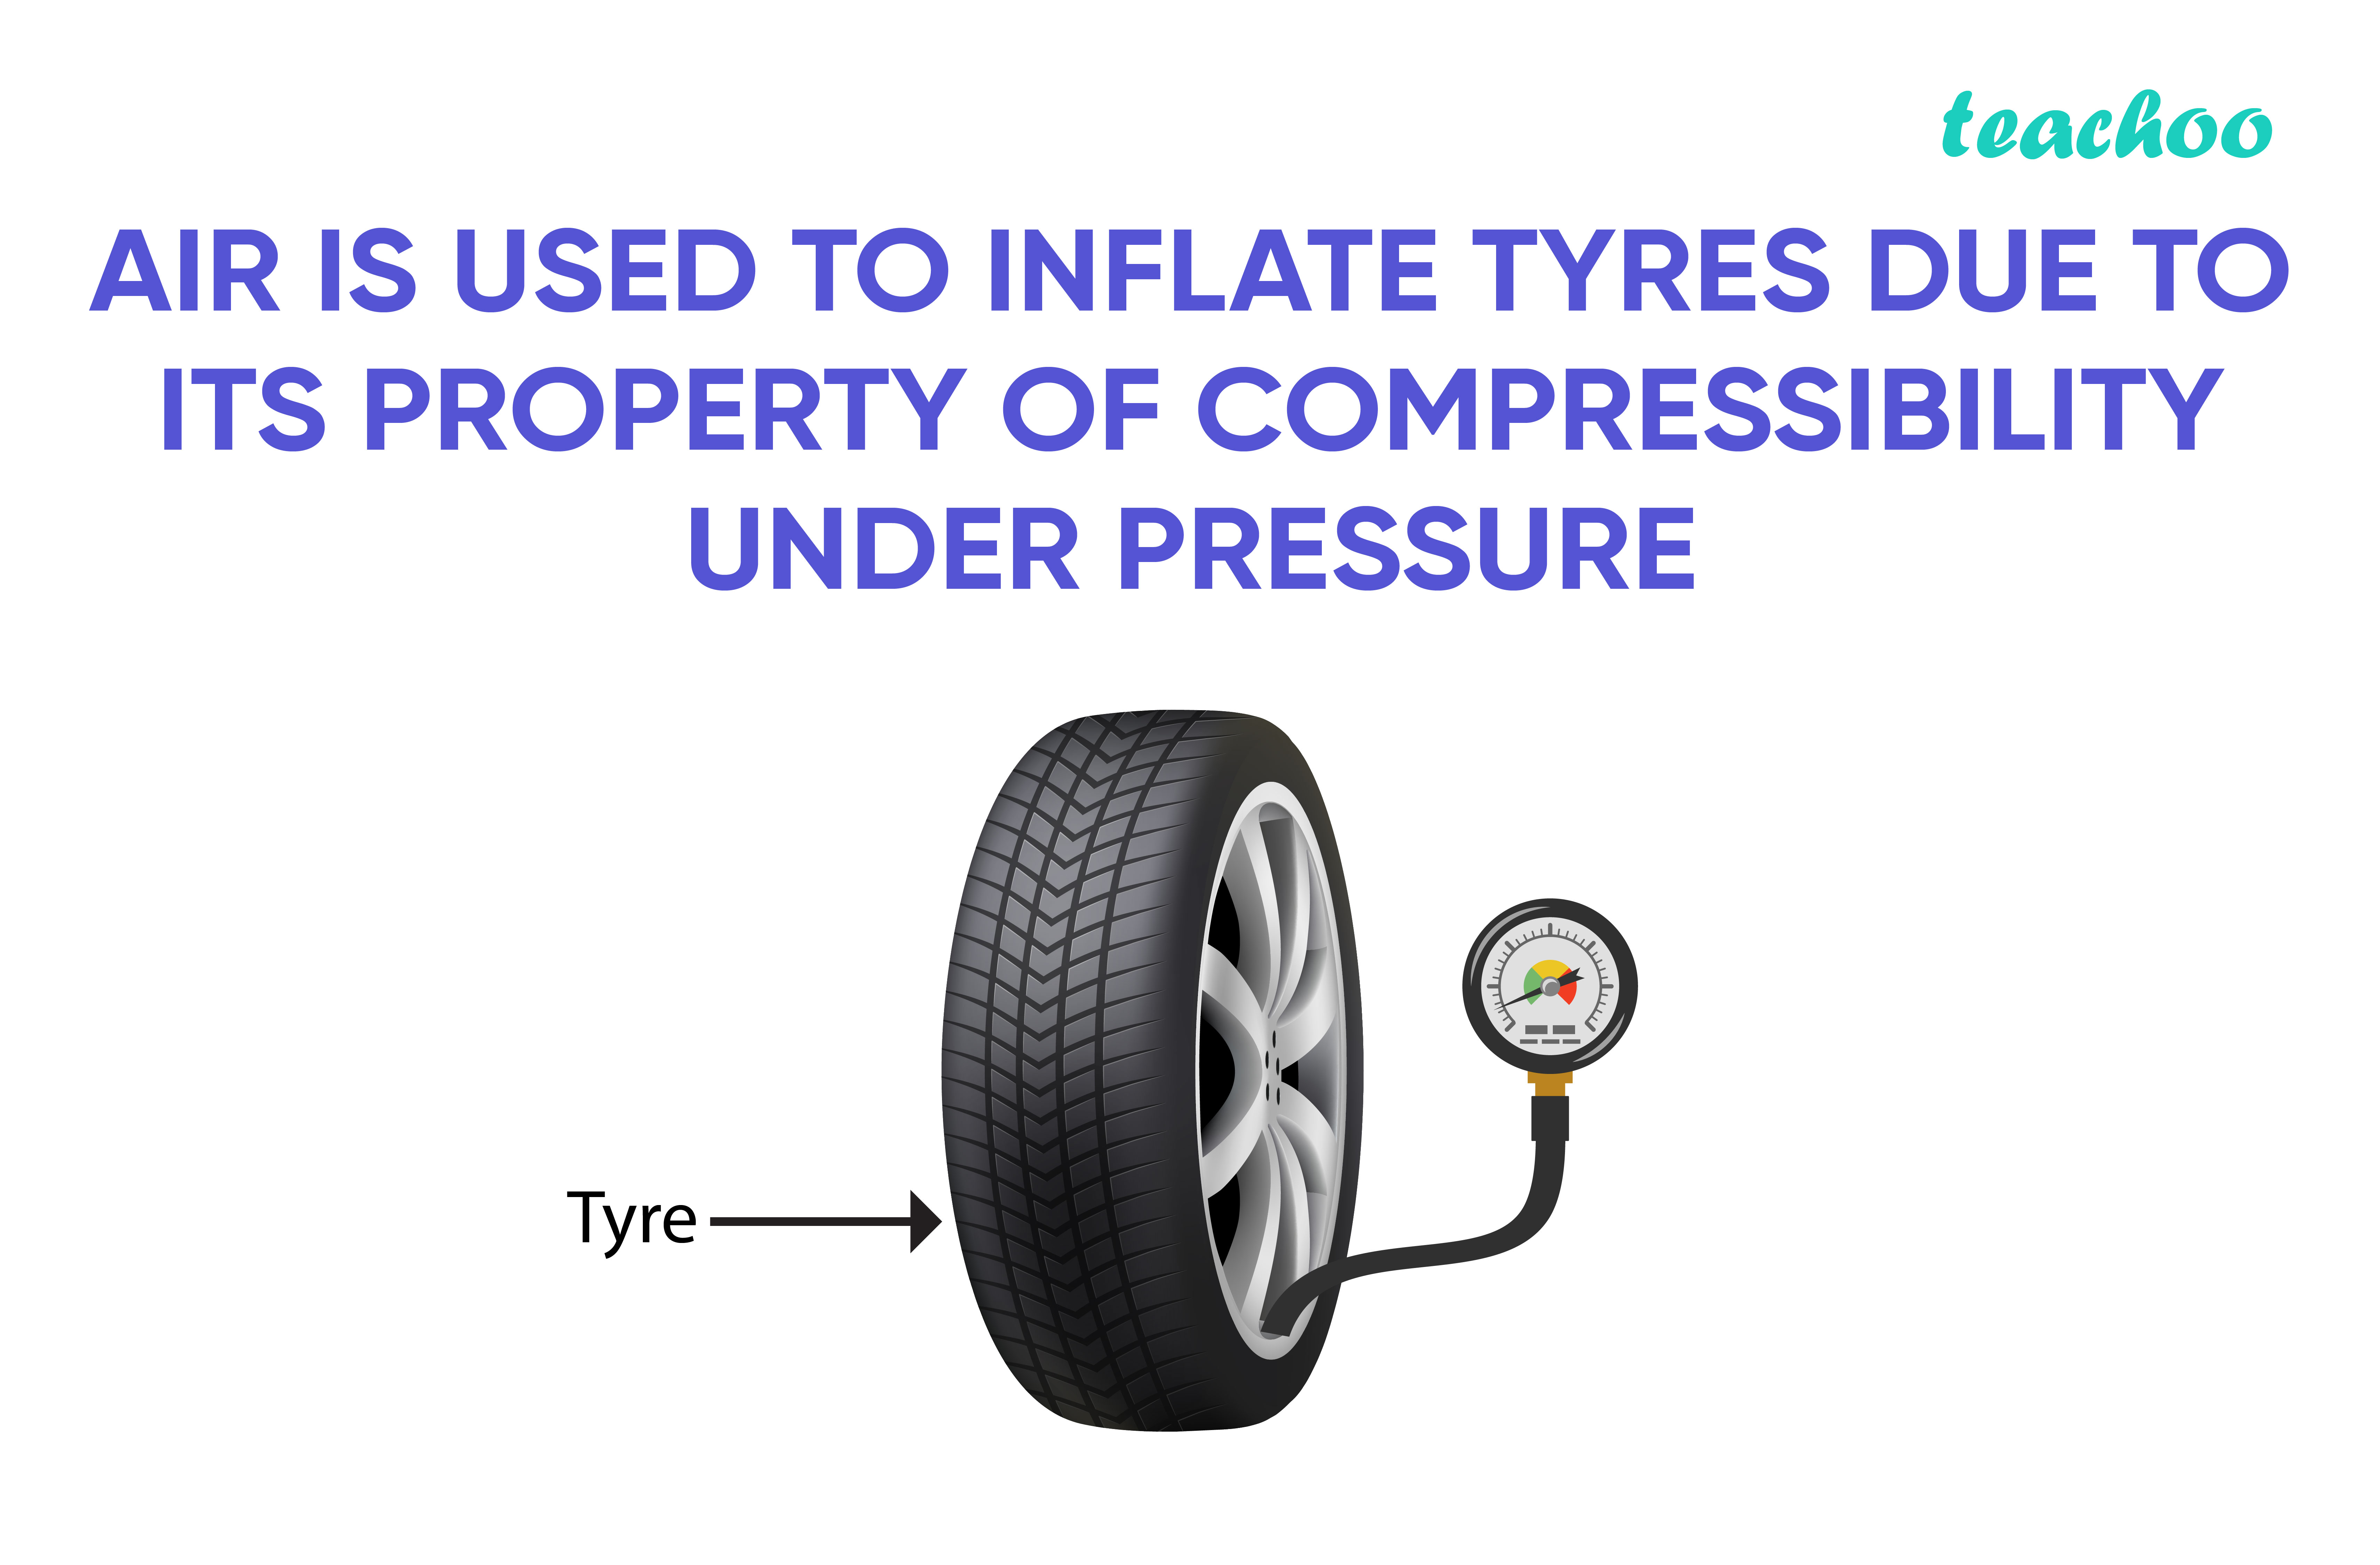 Air is used to inflate tyres due to its property of compressibility under pressure-Teachoo-01.jpg